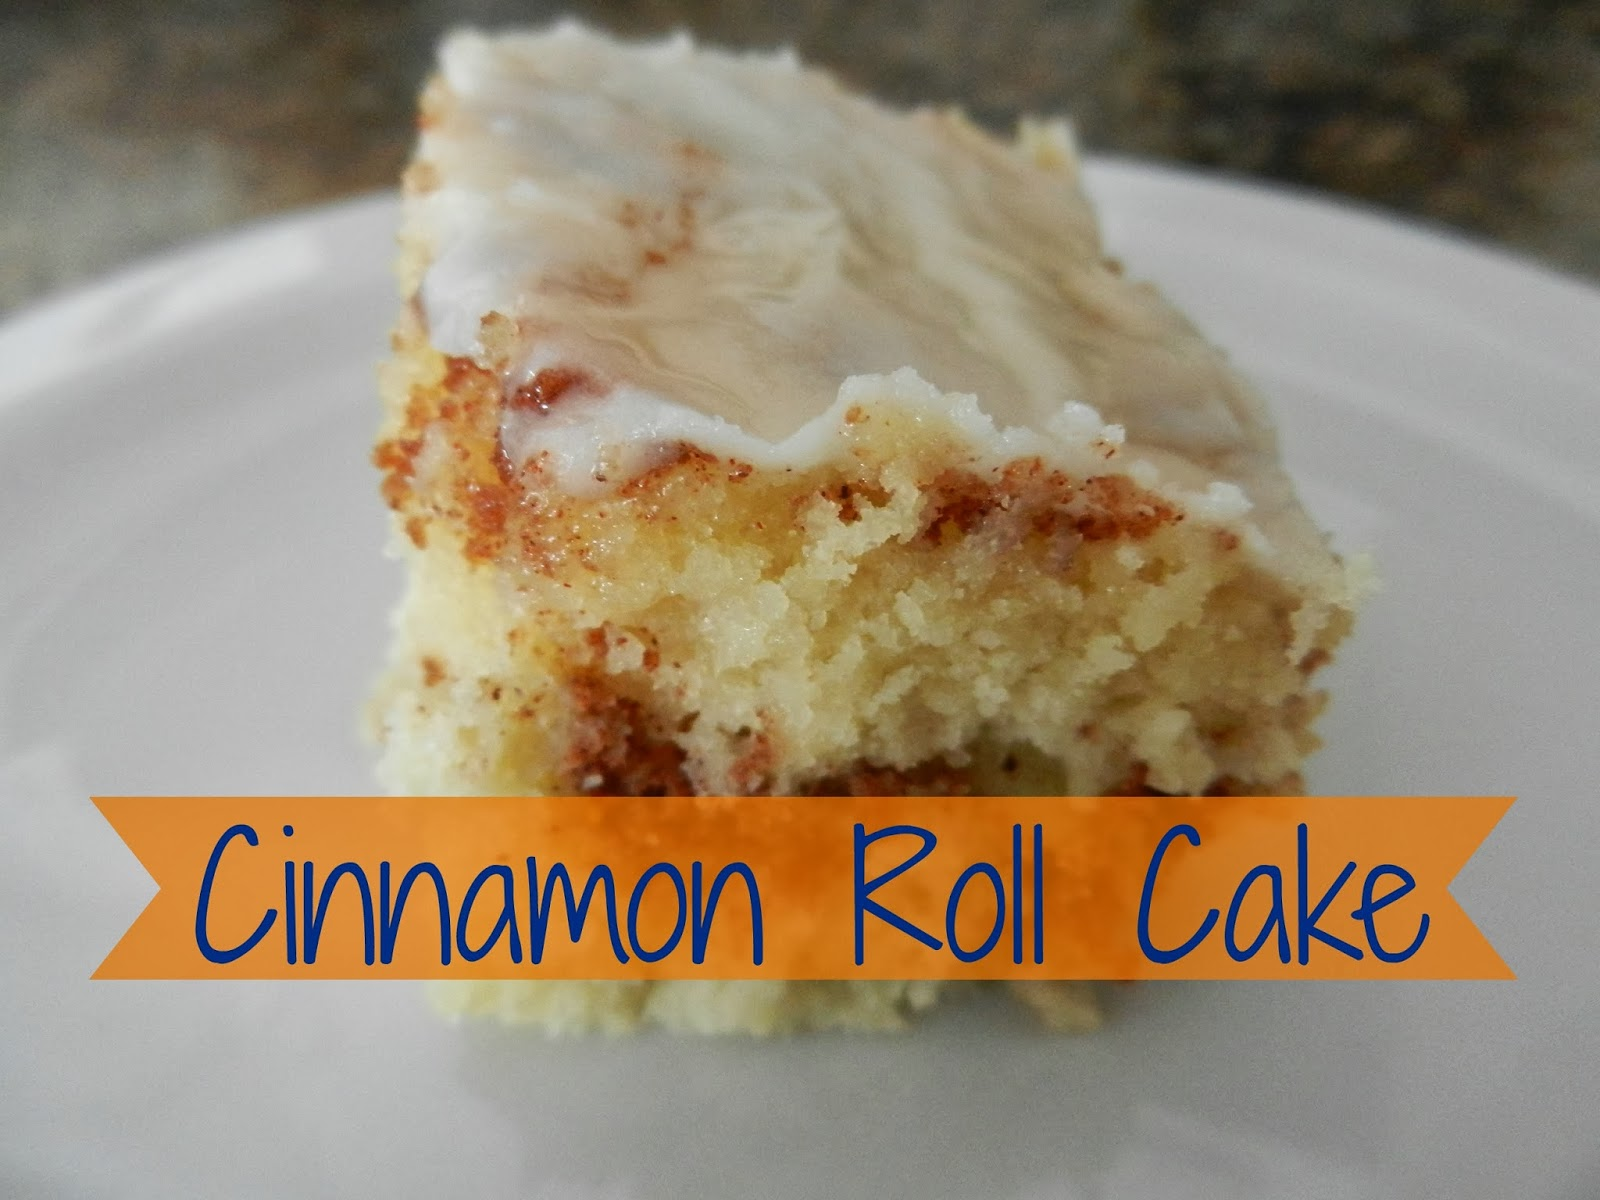 Delicious Cinnamon Roll Cake